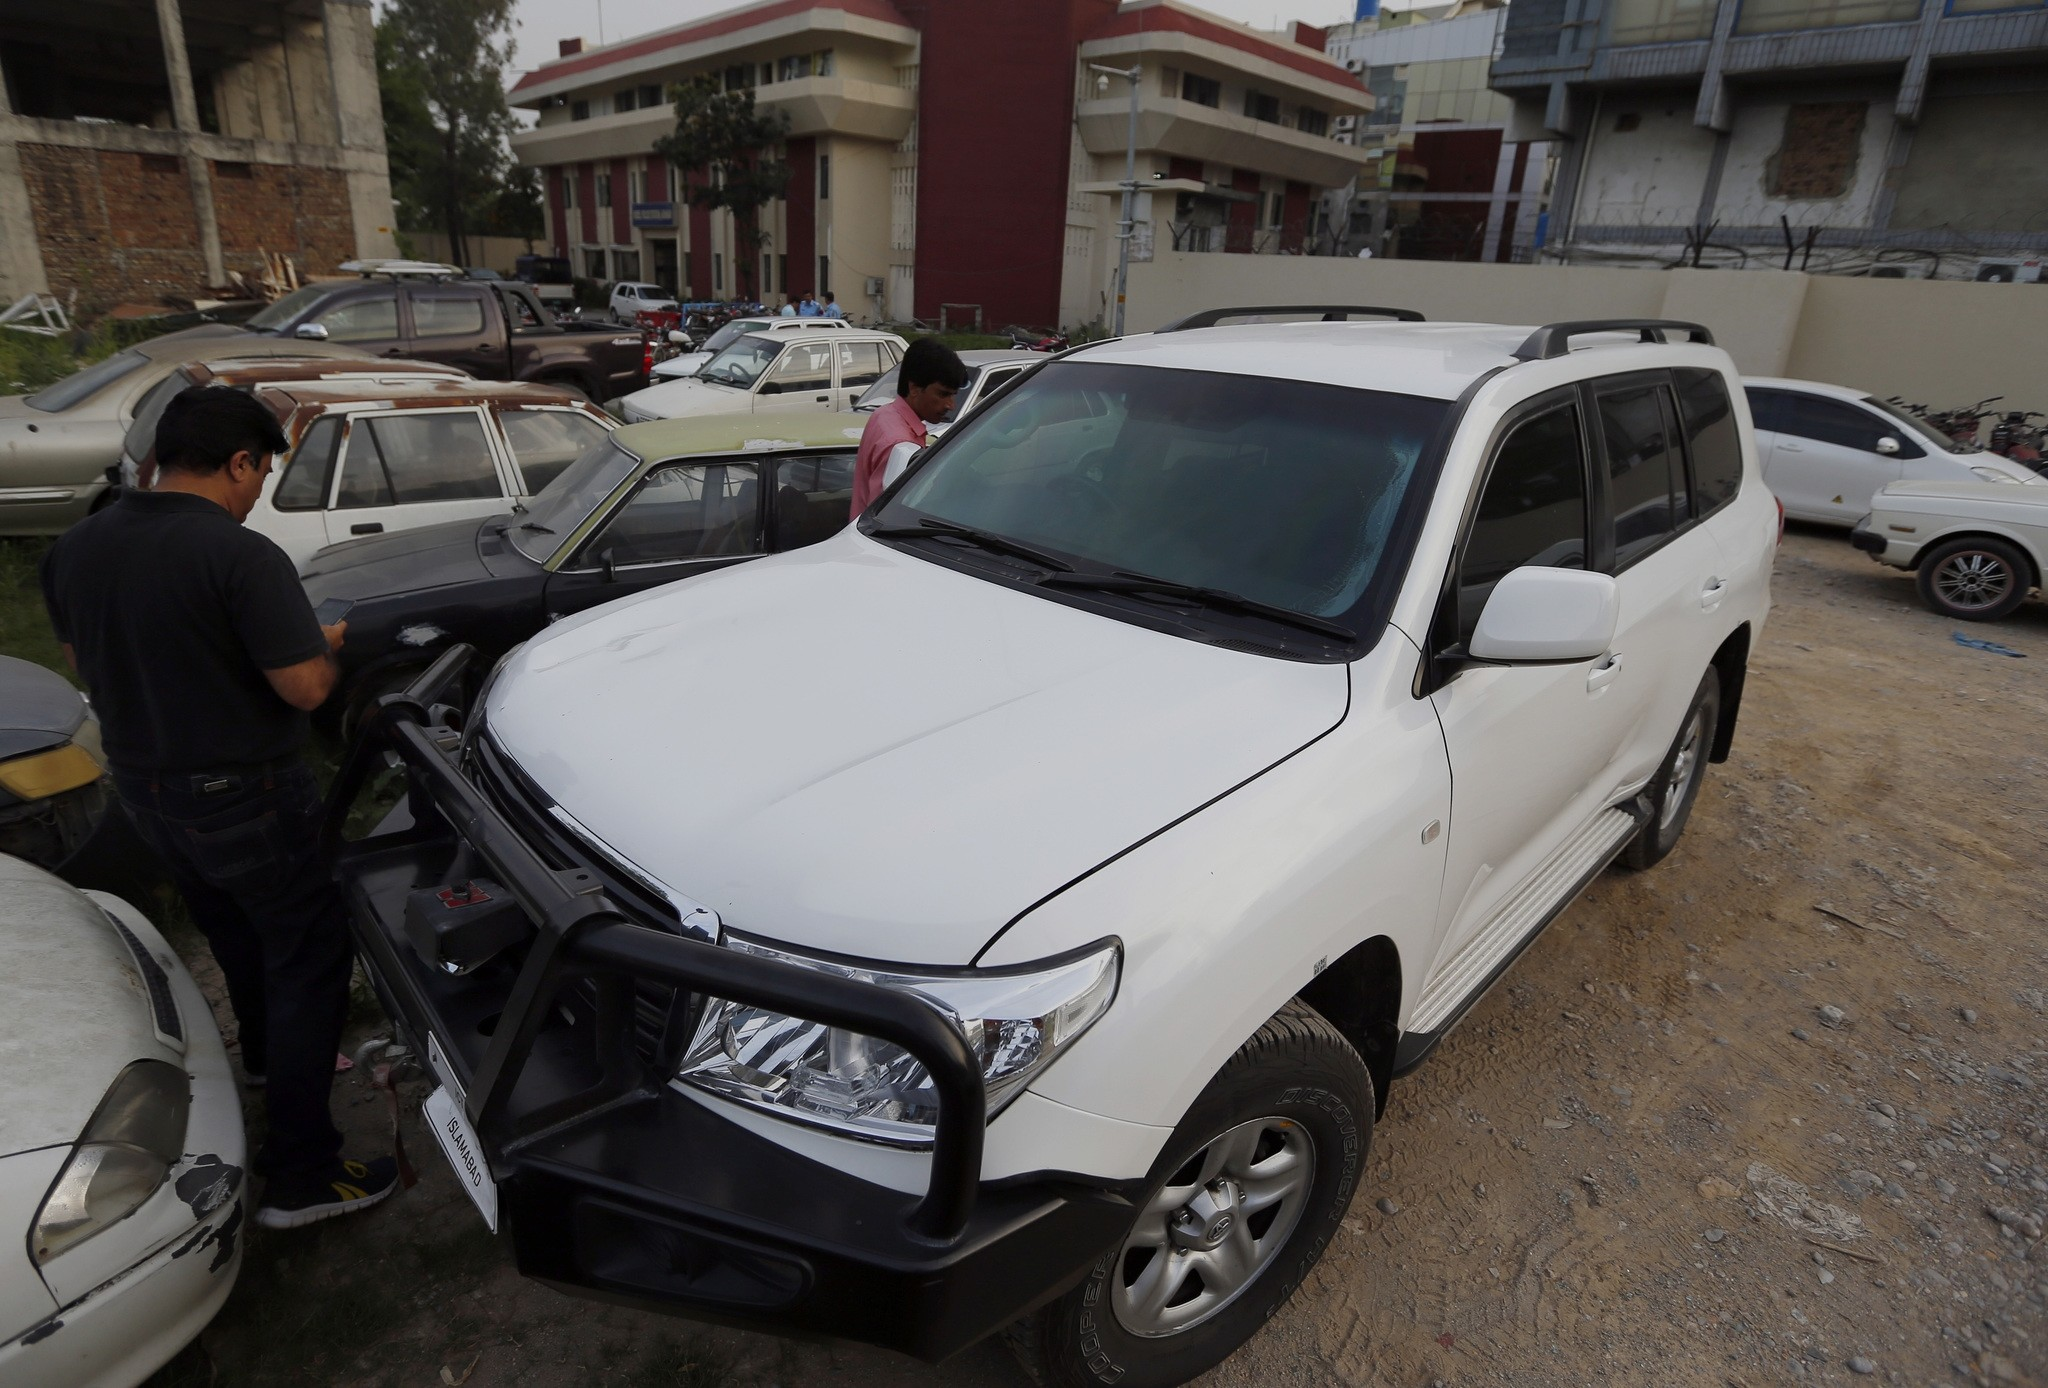 Pakistani journalists examine a car of American diplomate parked inside a police station after an accident in Islamabad, Pakistan, Saturday, April 7, 2018. (AP Photo)